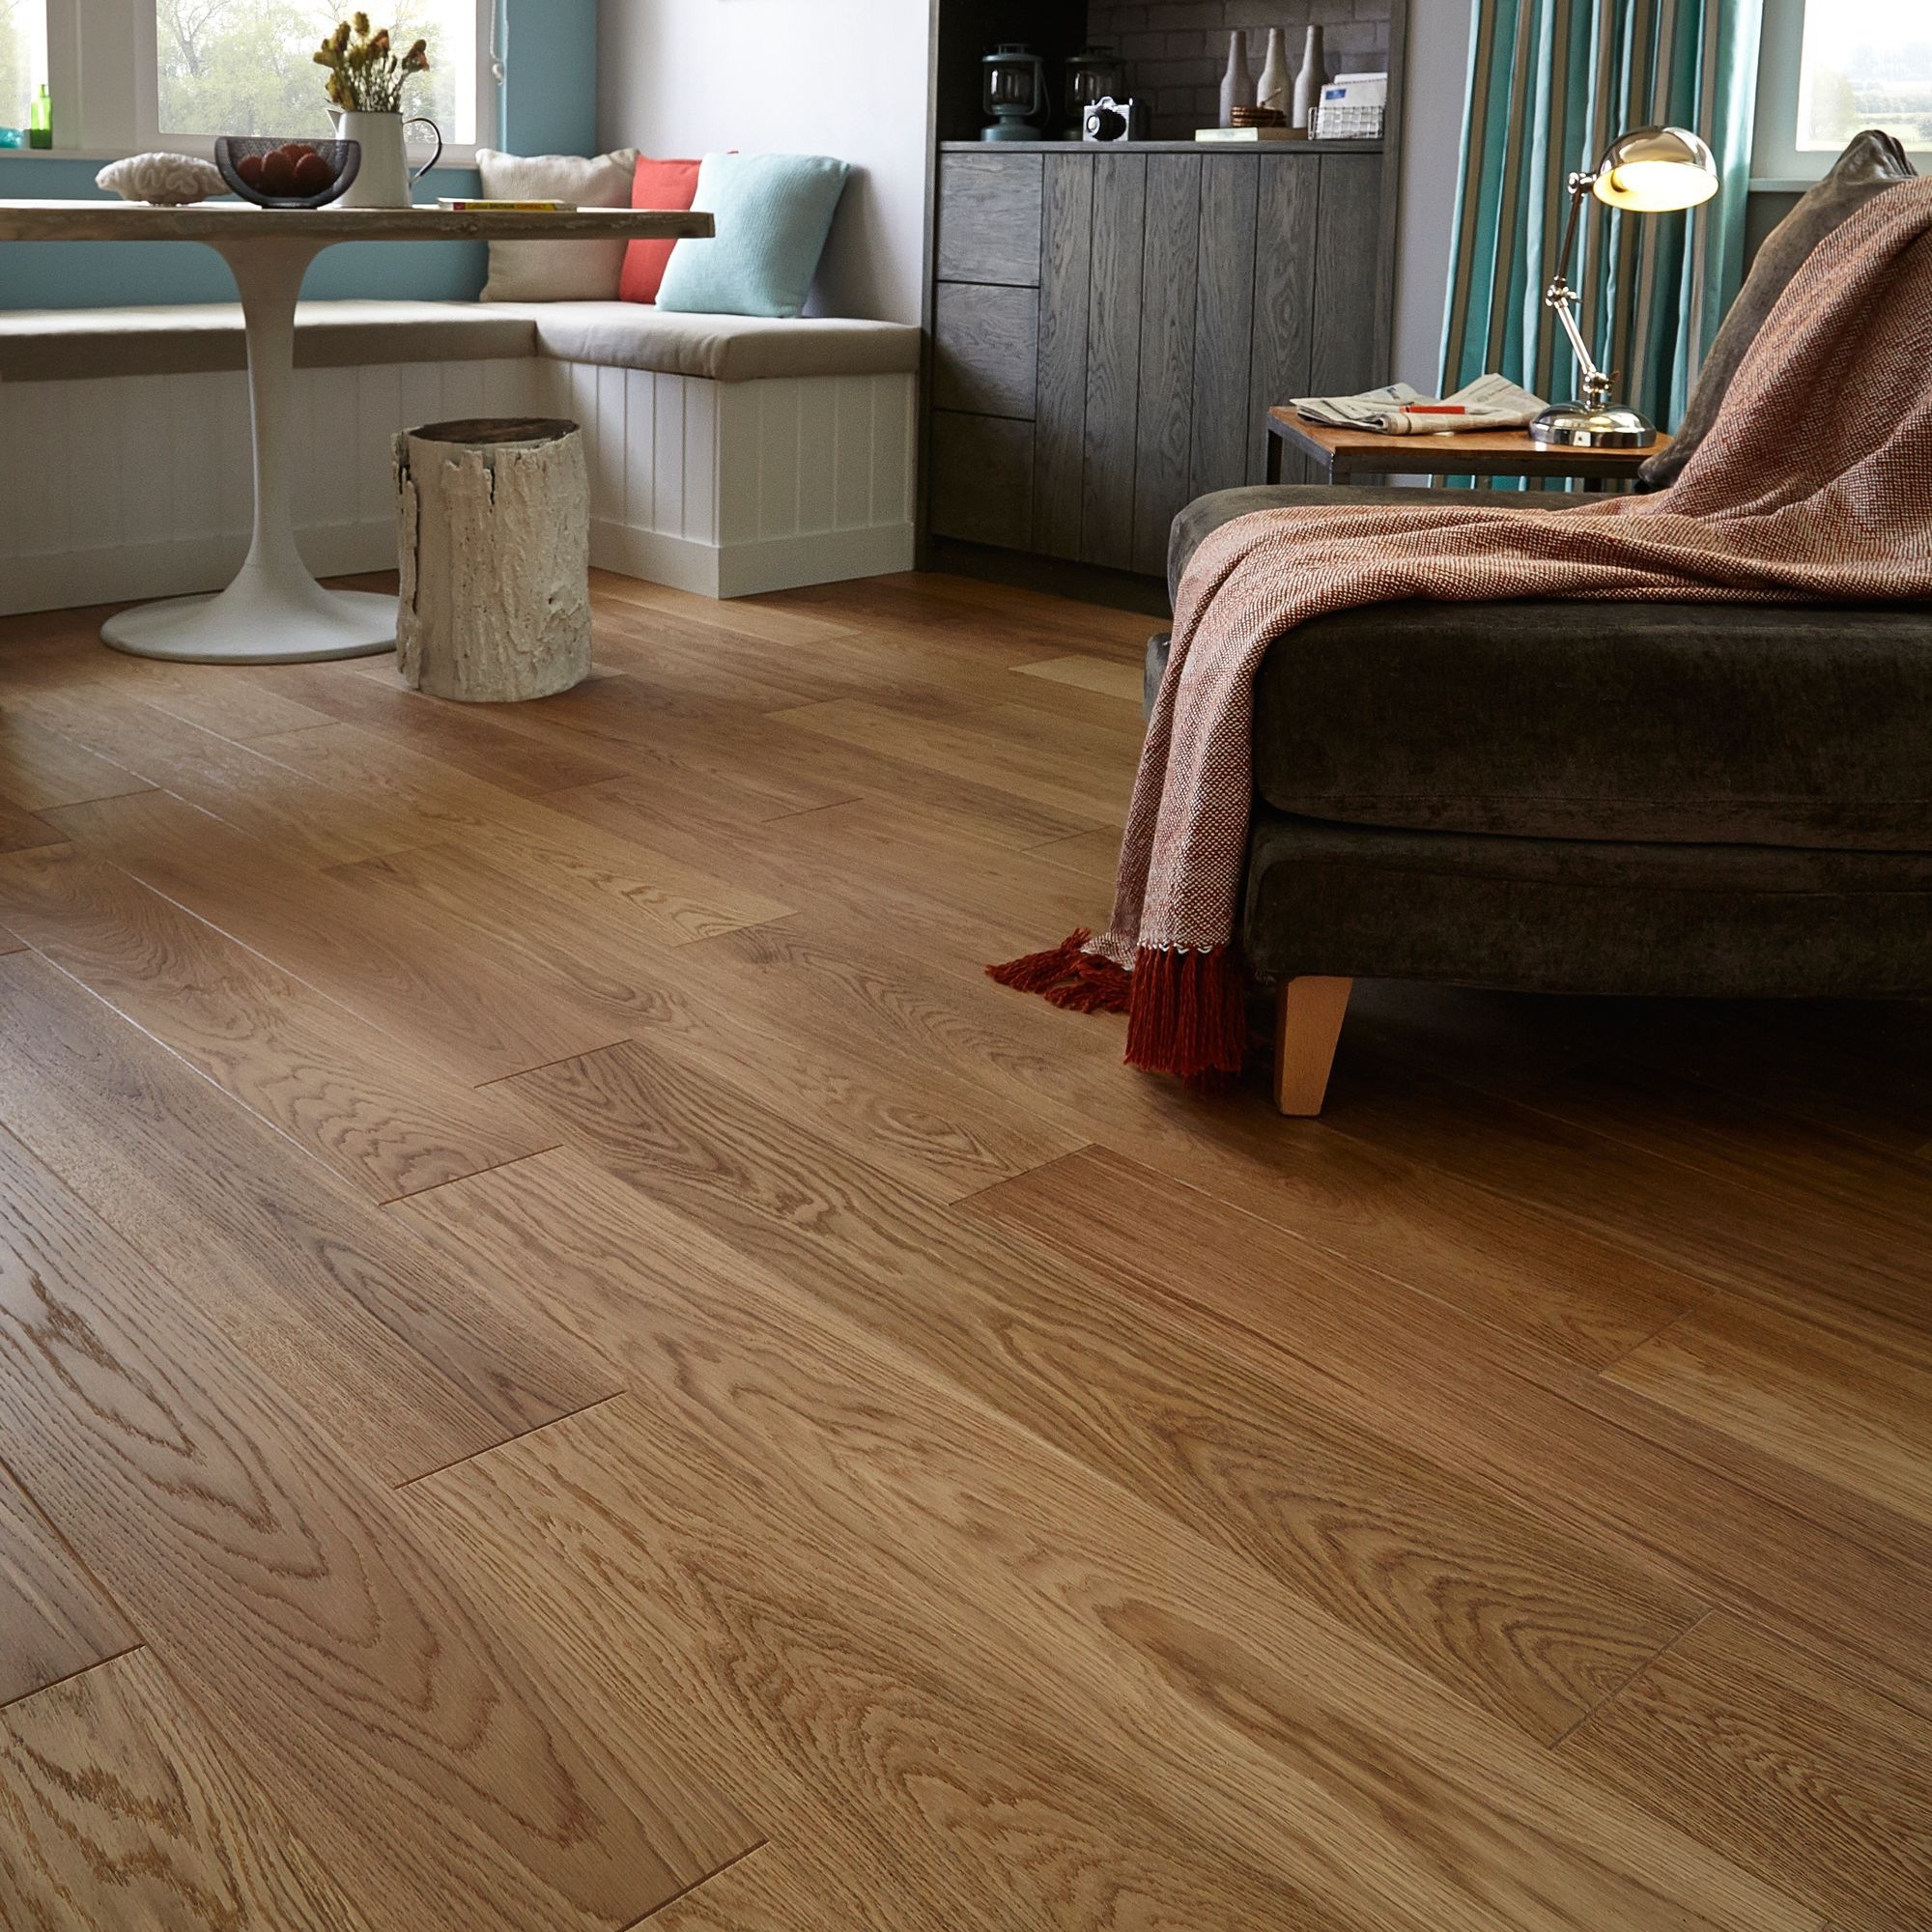 Quick Step Cadenza Natural Oak Effect Wood Top Layer Flooring 1 M² Pack Departments Diy At B Q